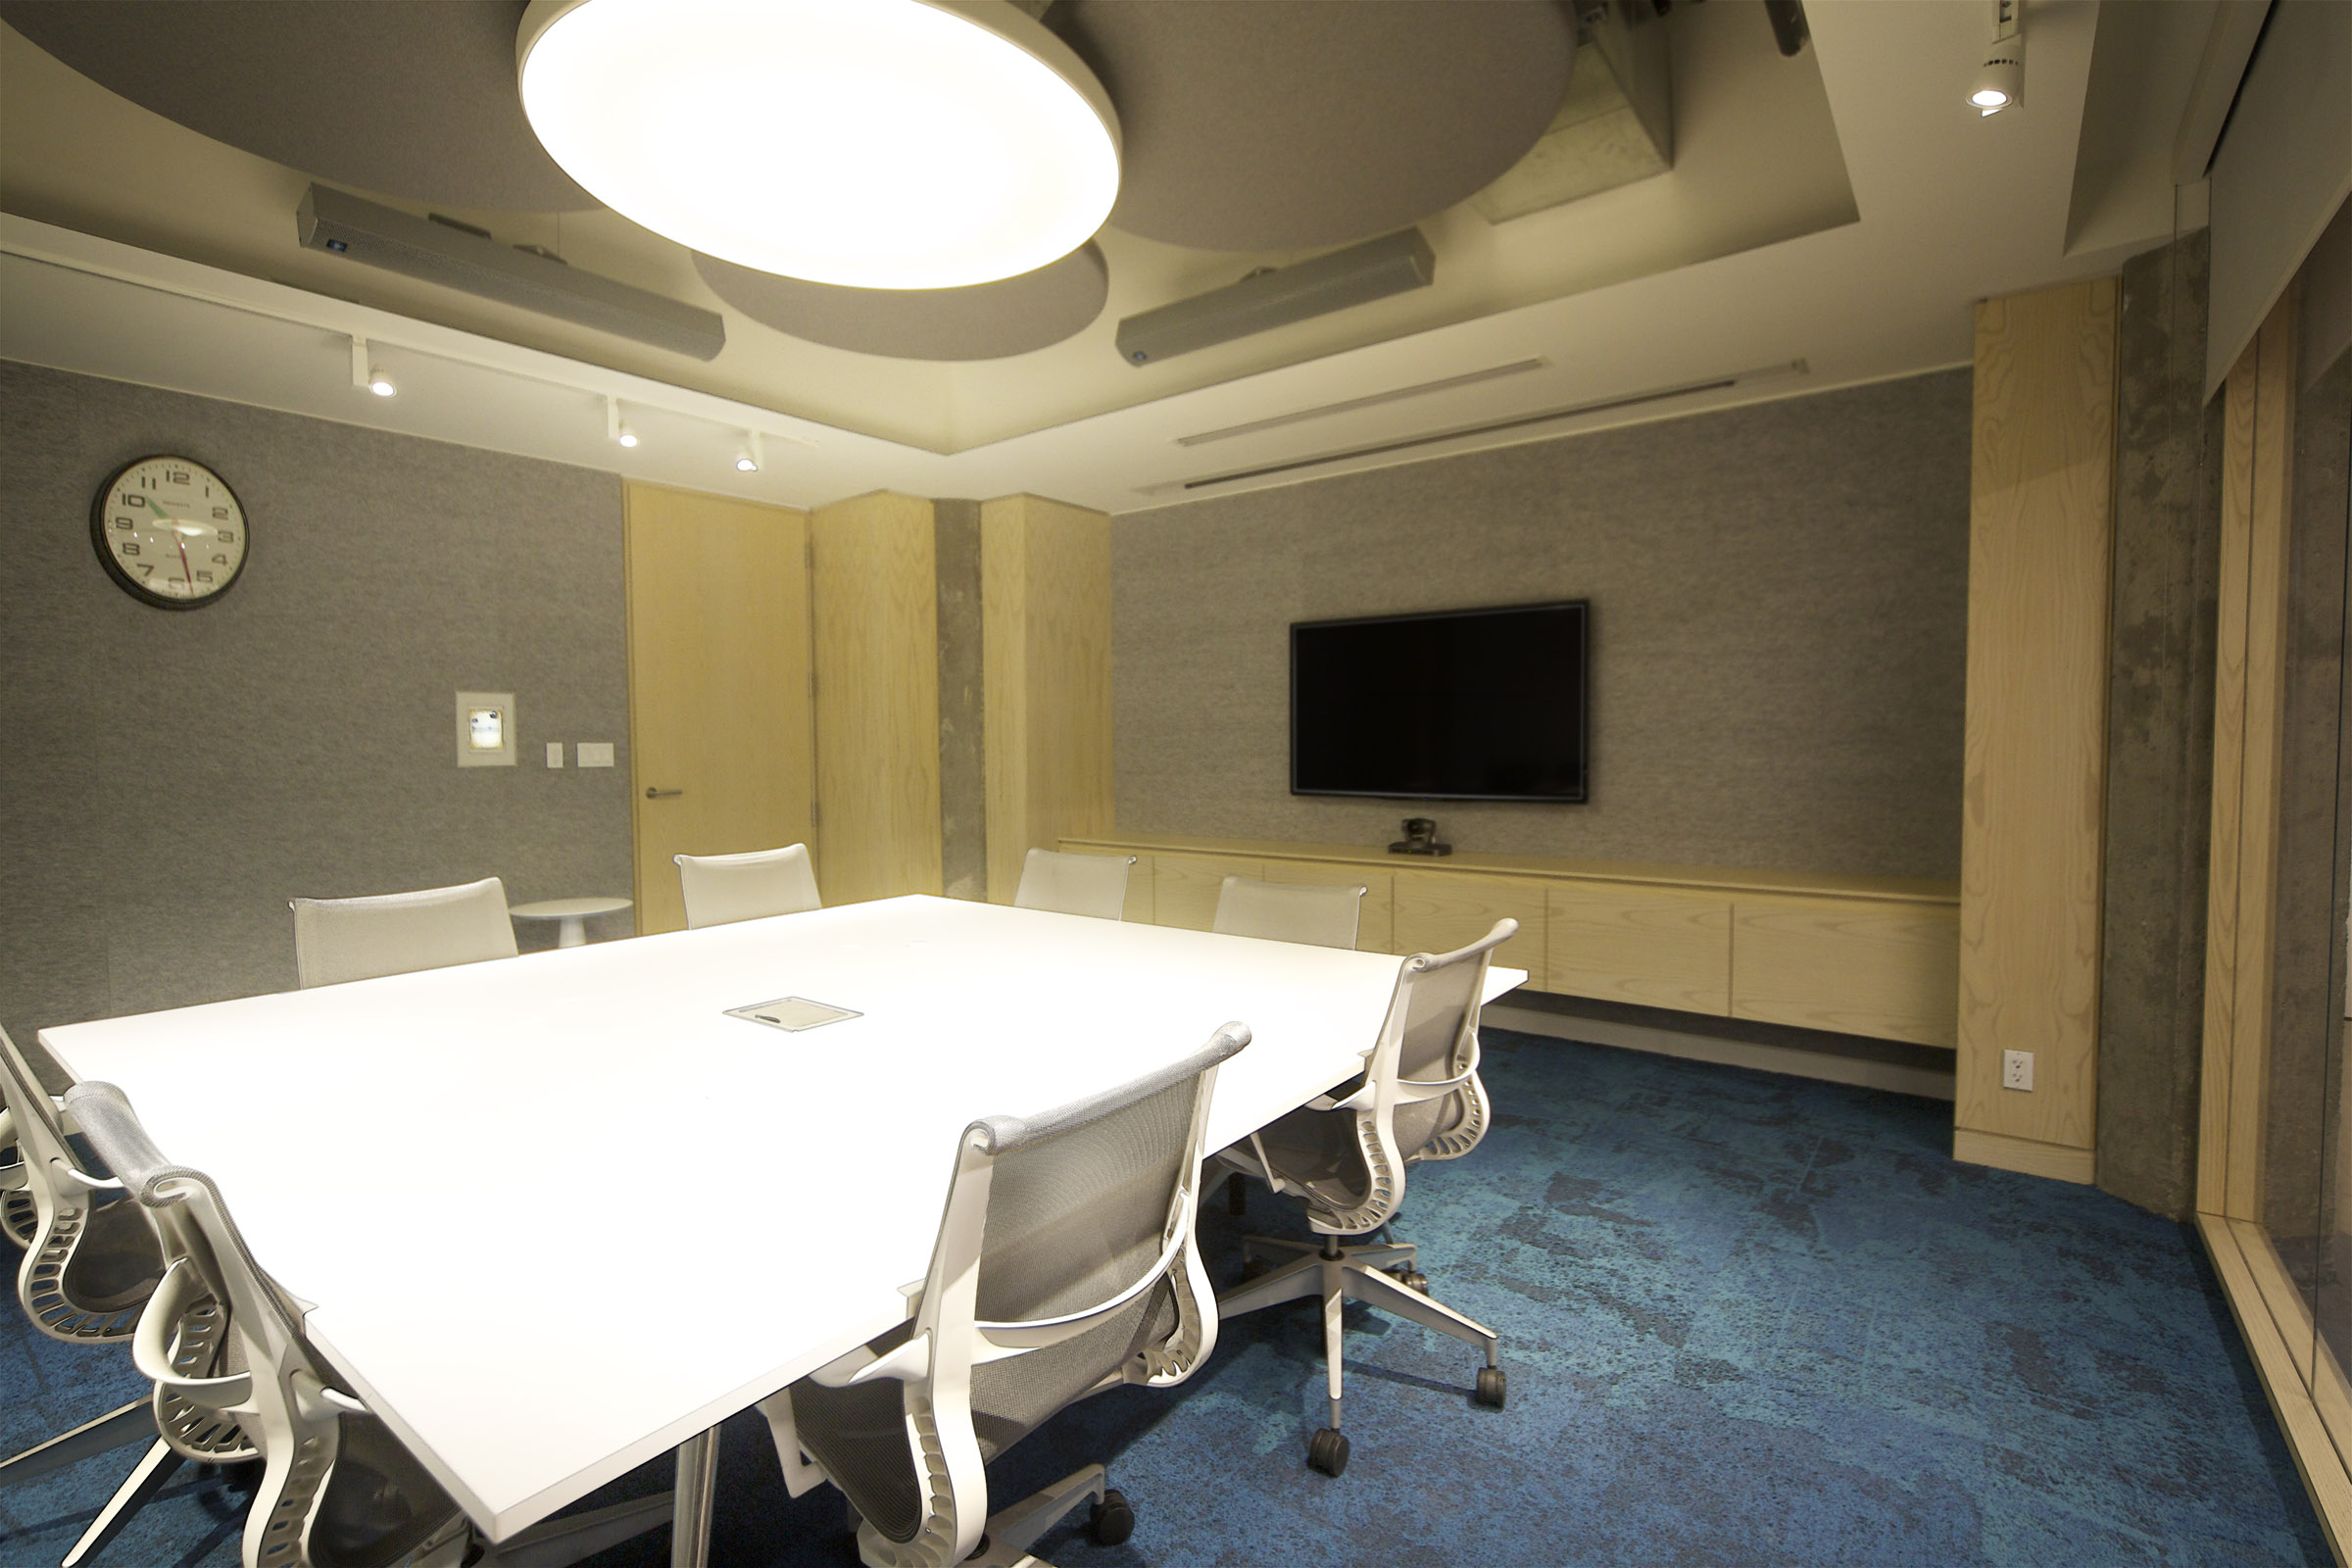 With eight, discrete, white, auto-levelling microphones in the tabletop, guests can enjoy a video or tele-conference without even thinking about the technology that's making it possible.